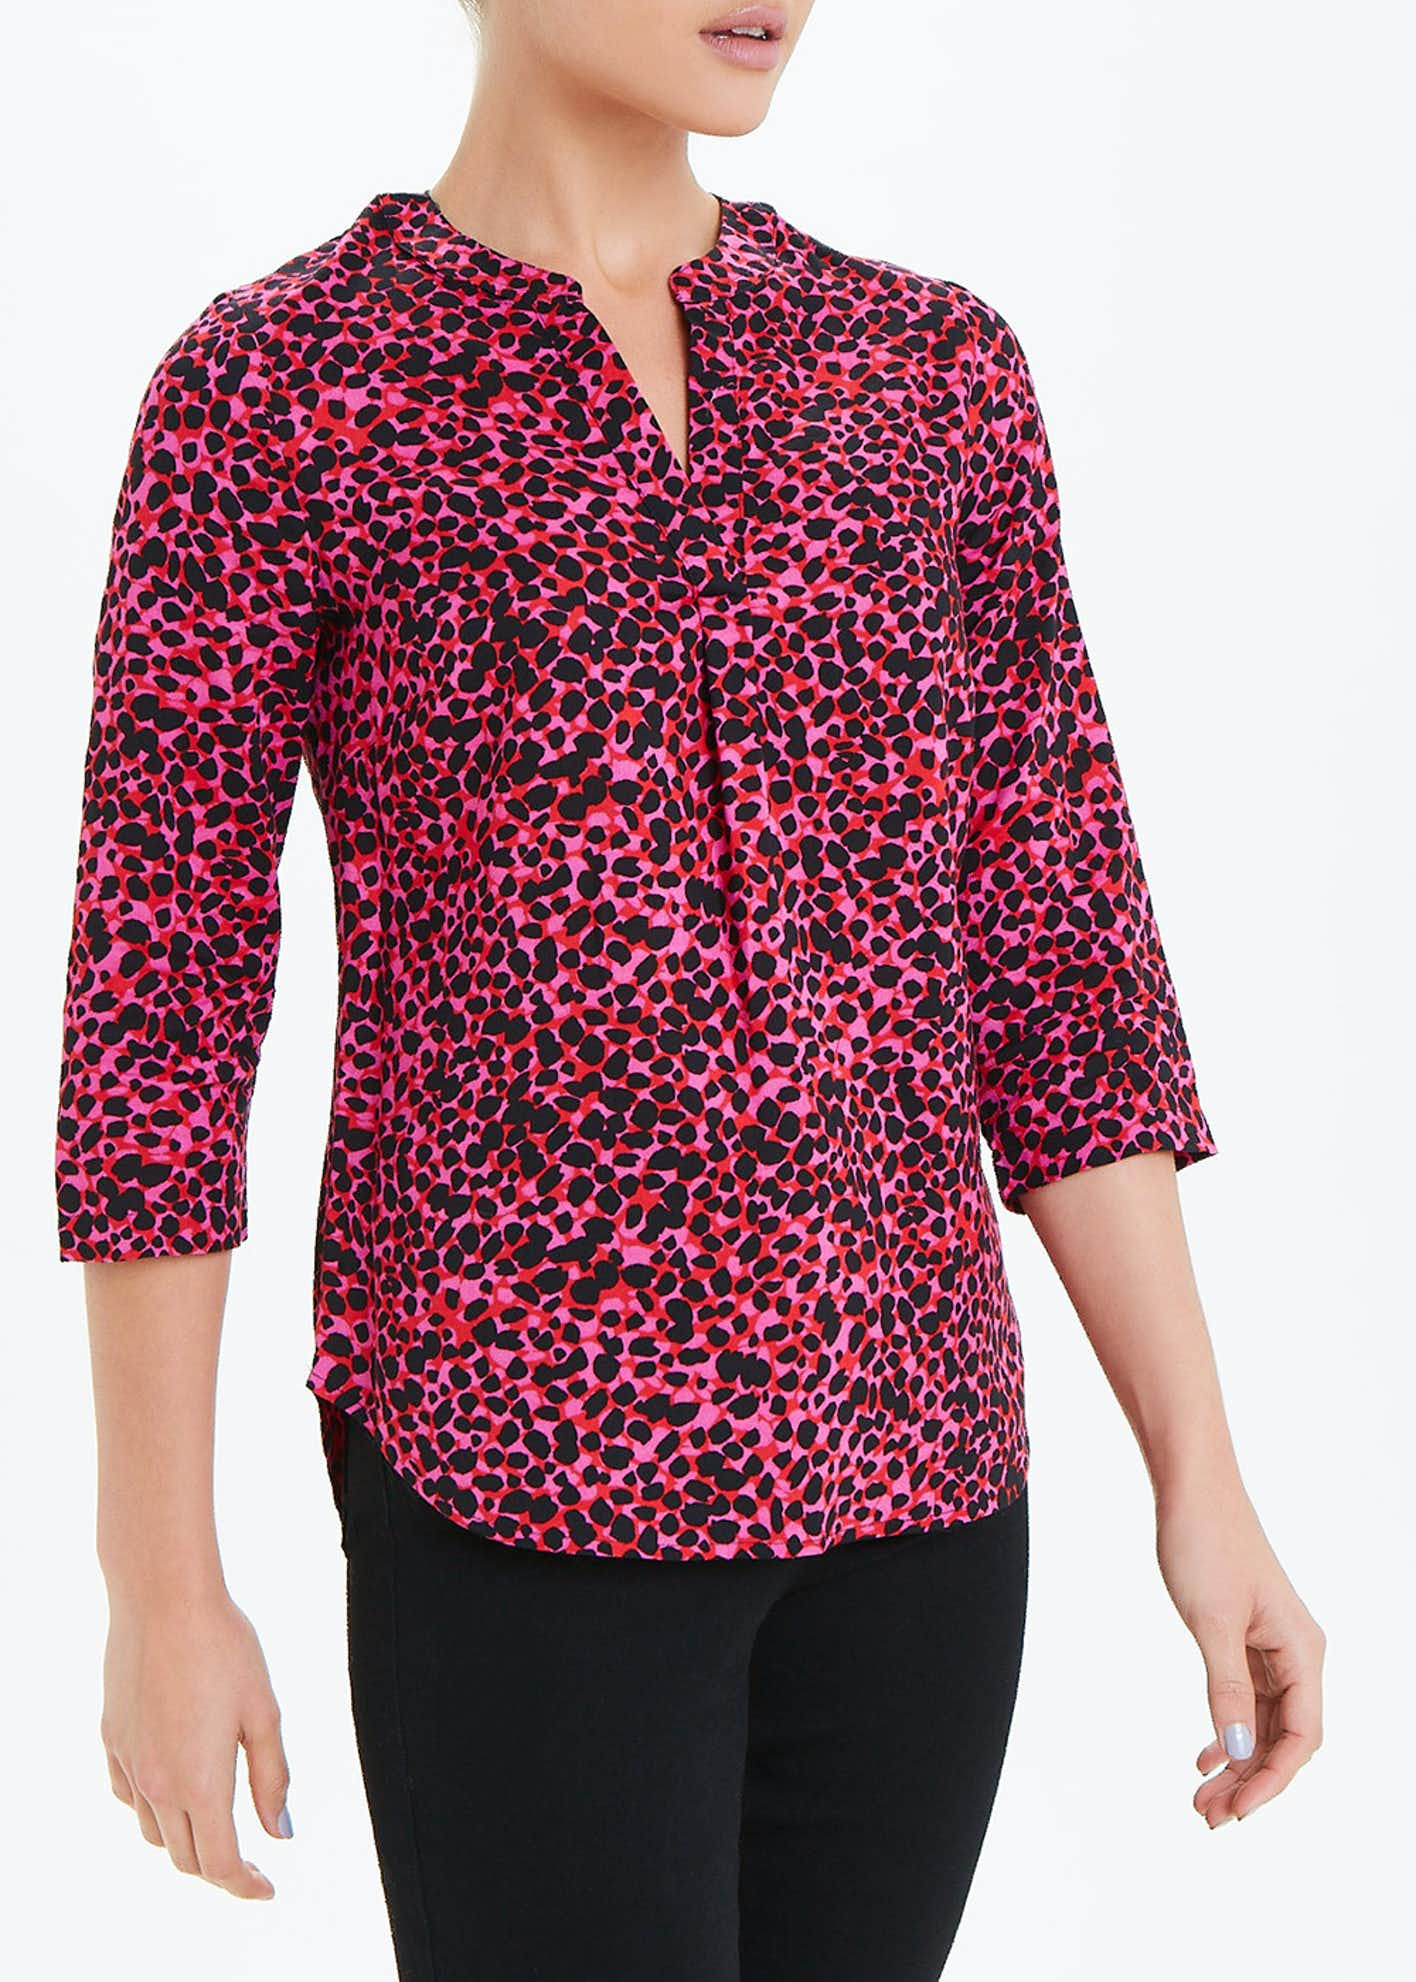 Pink 3/4 Sleeve V-Neck Animal Print Blouse